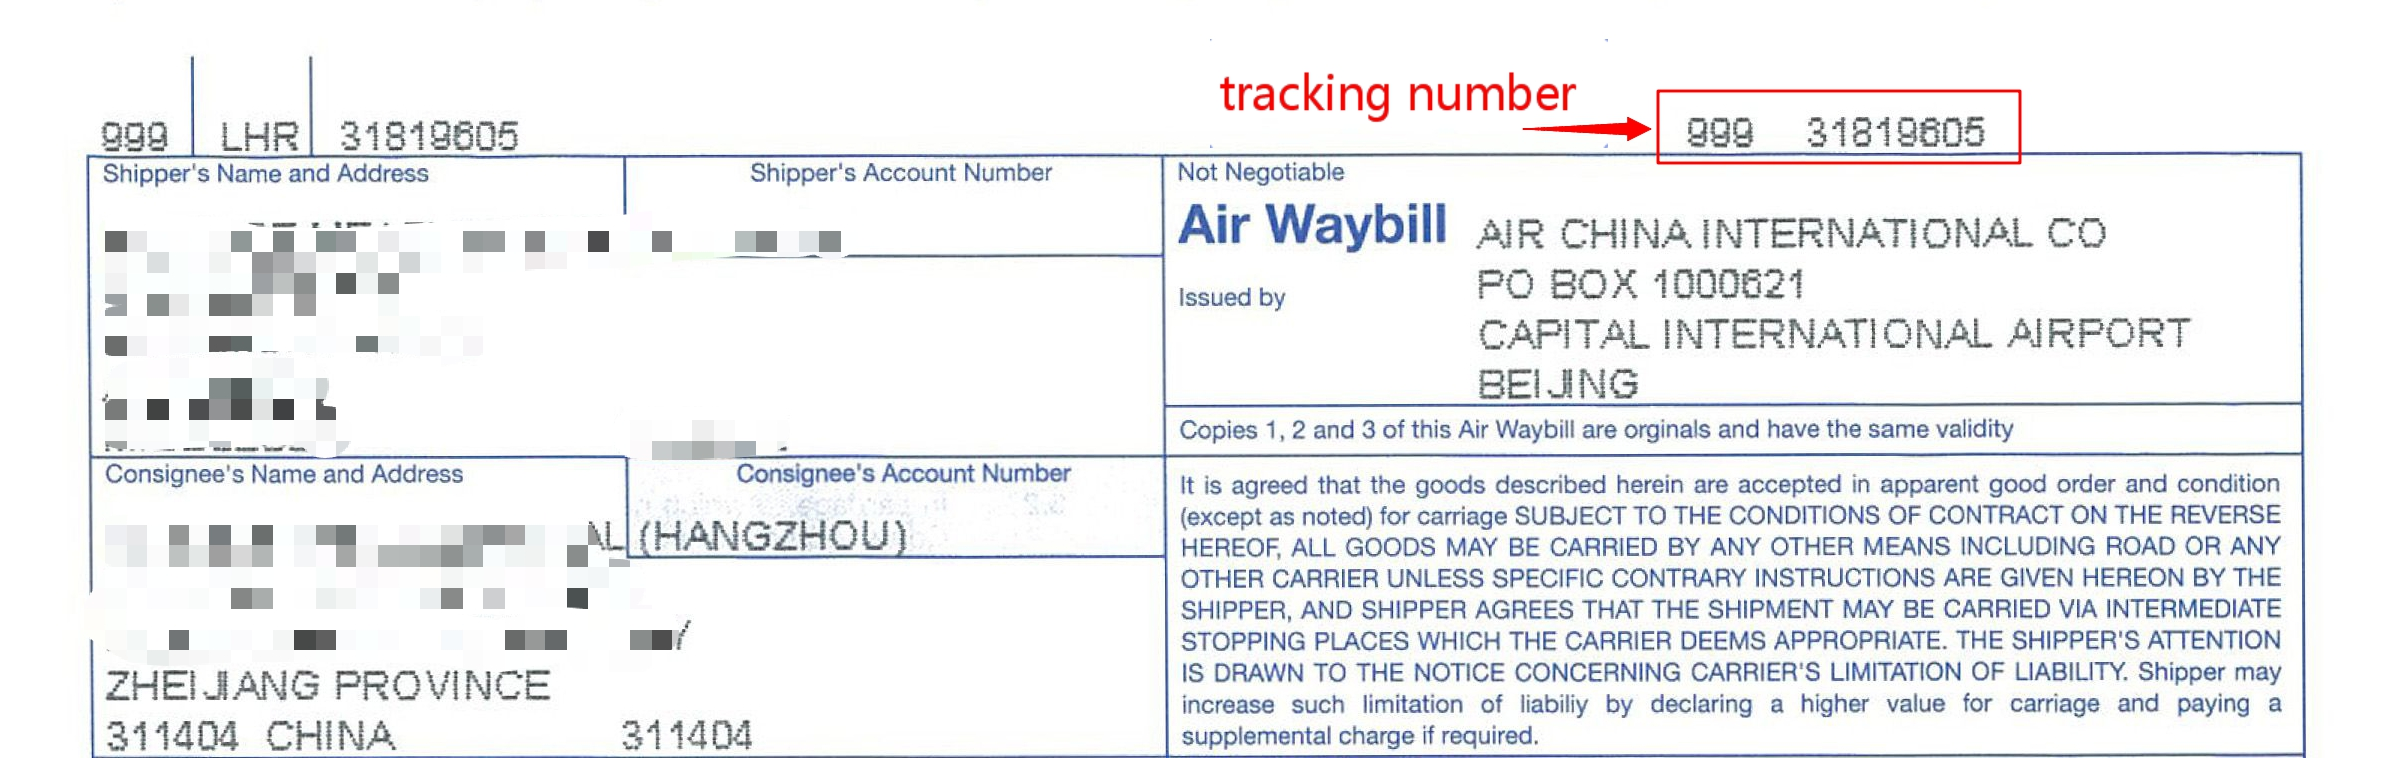 airway bill